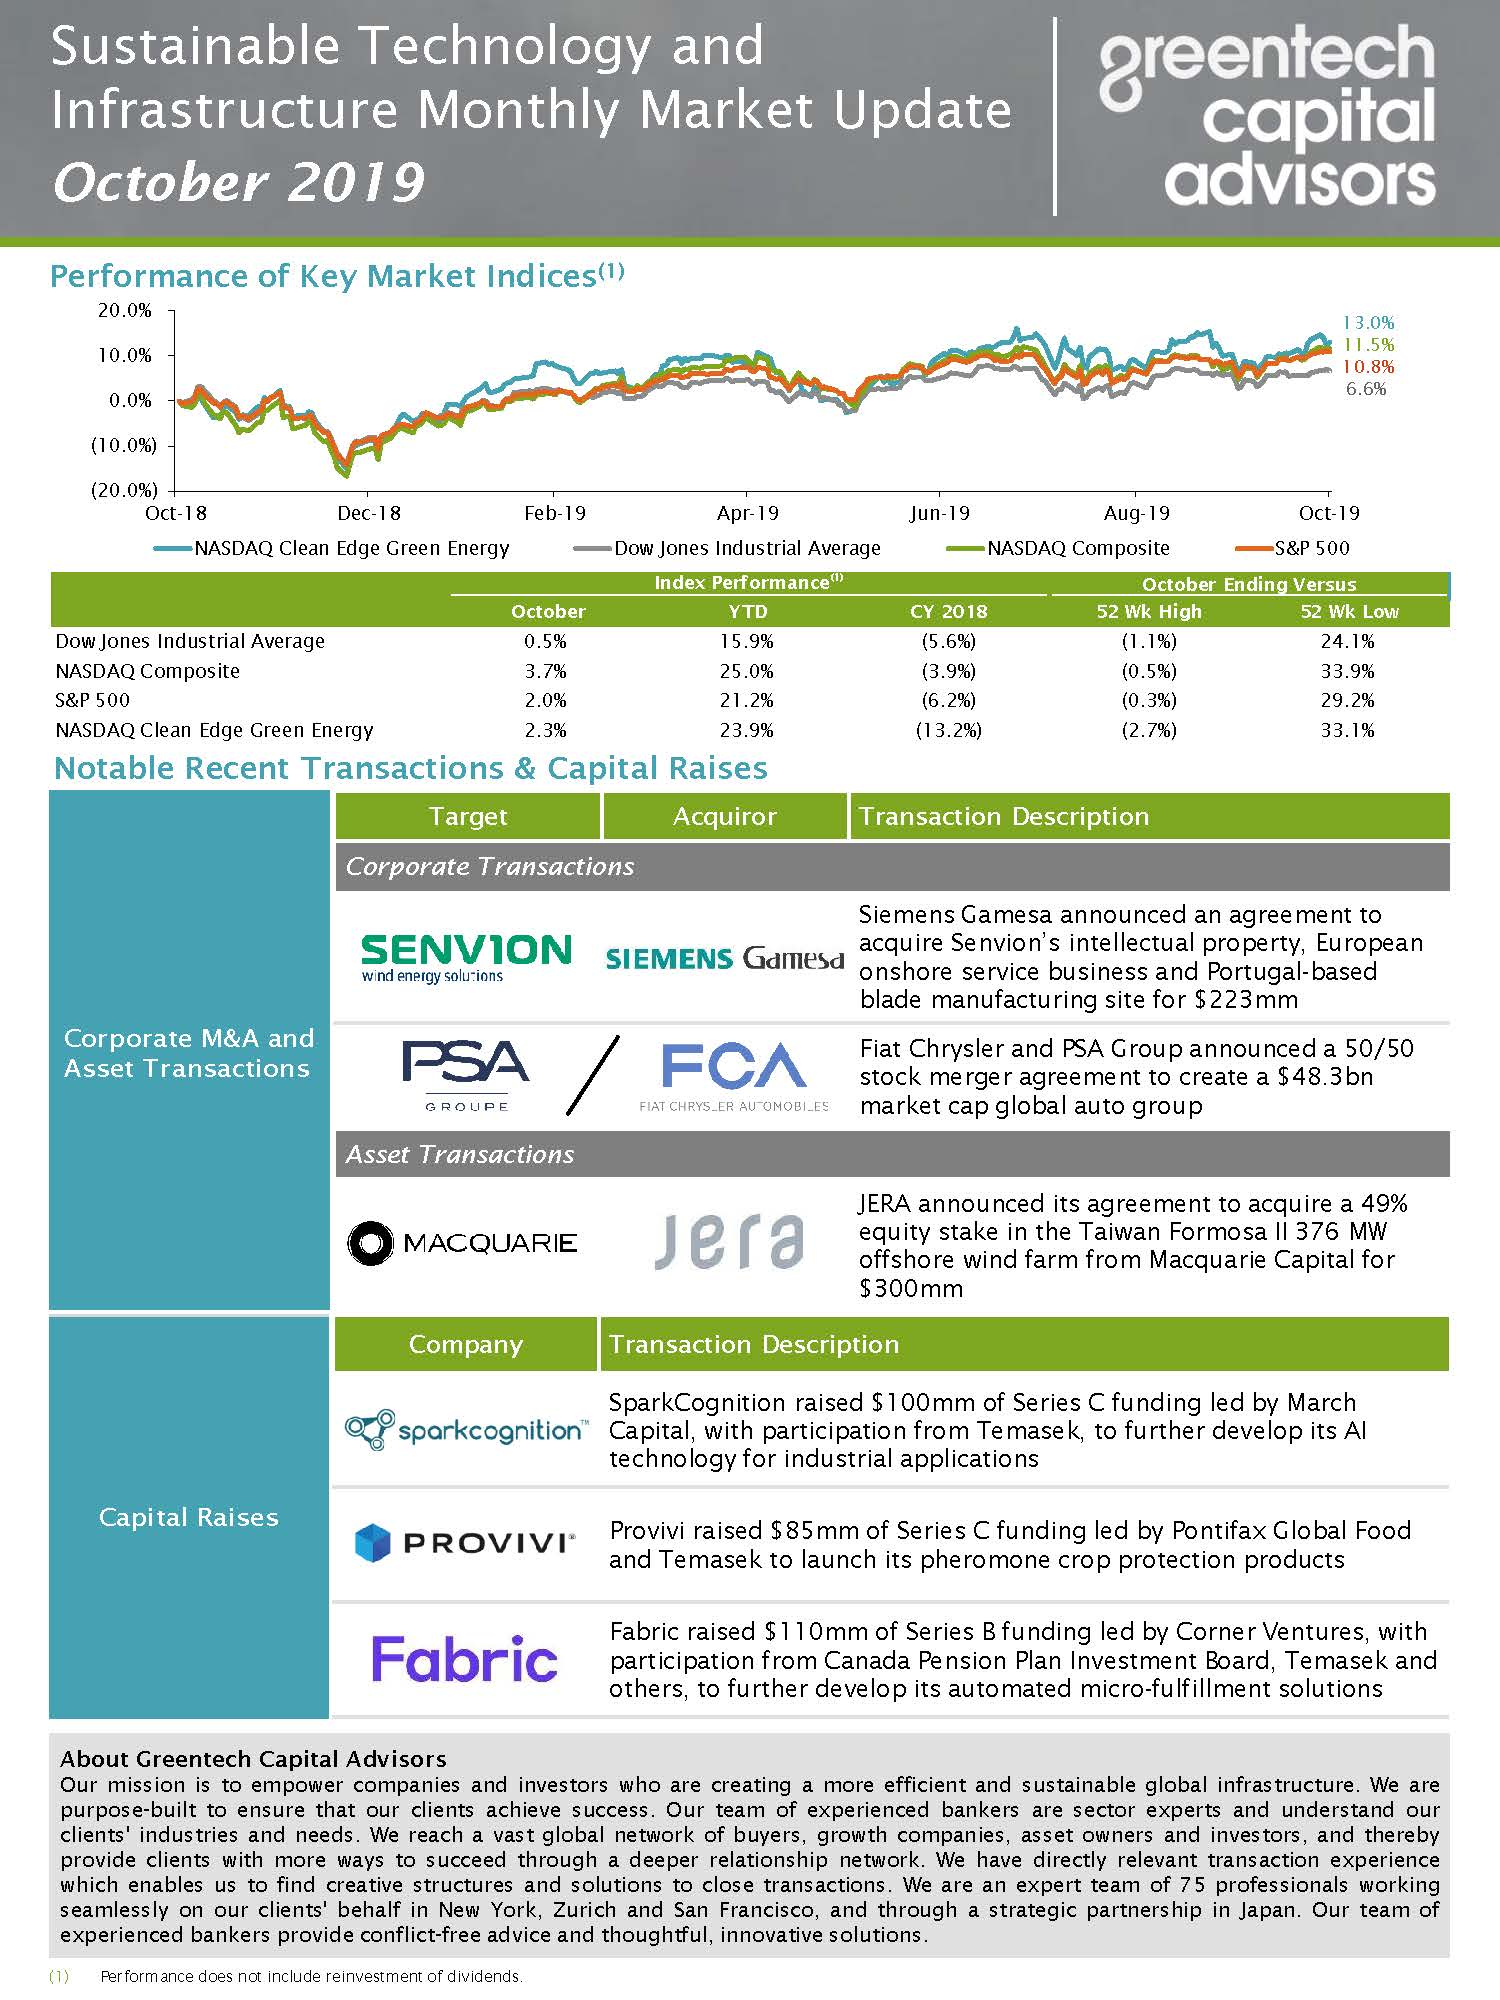 Sustainable Investing Monthly Market Update - October 2019